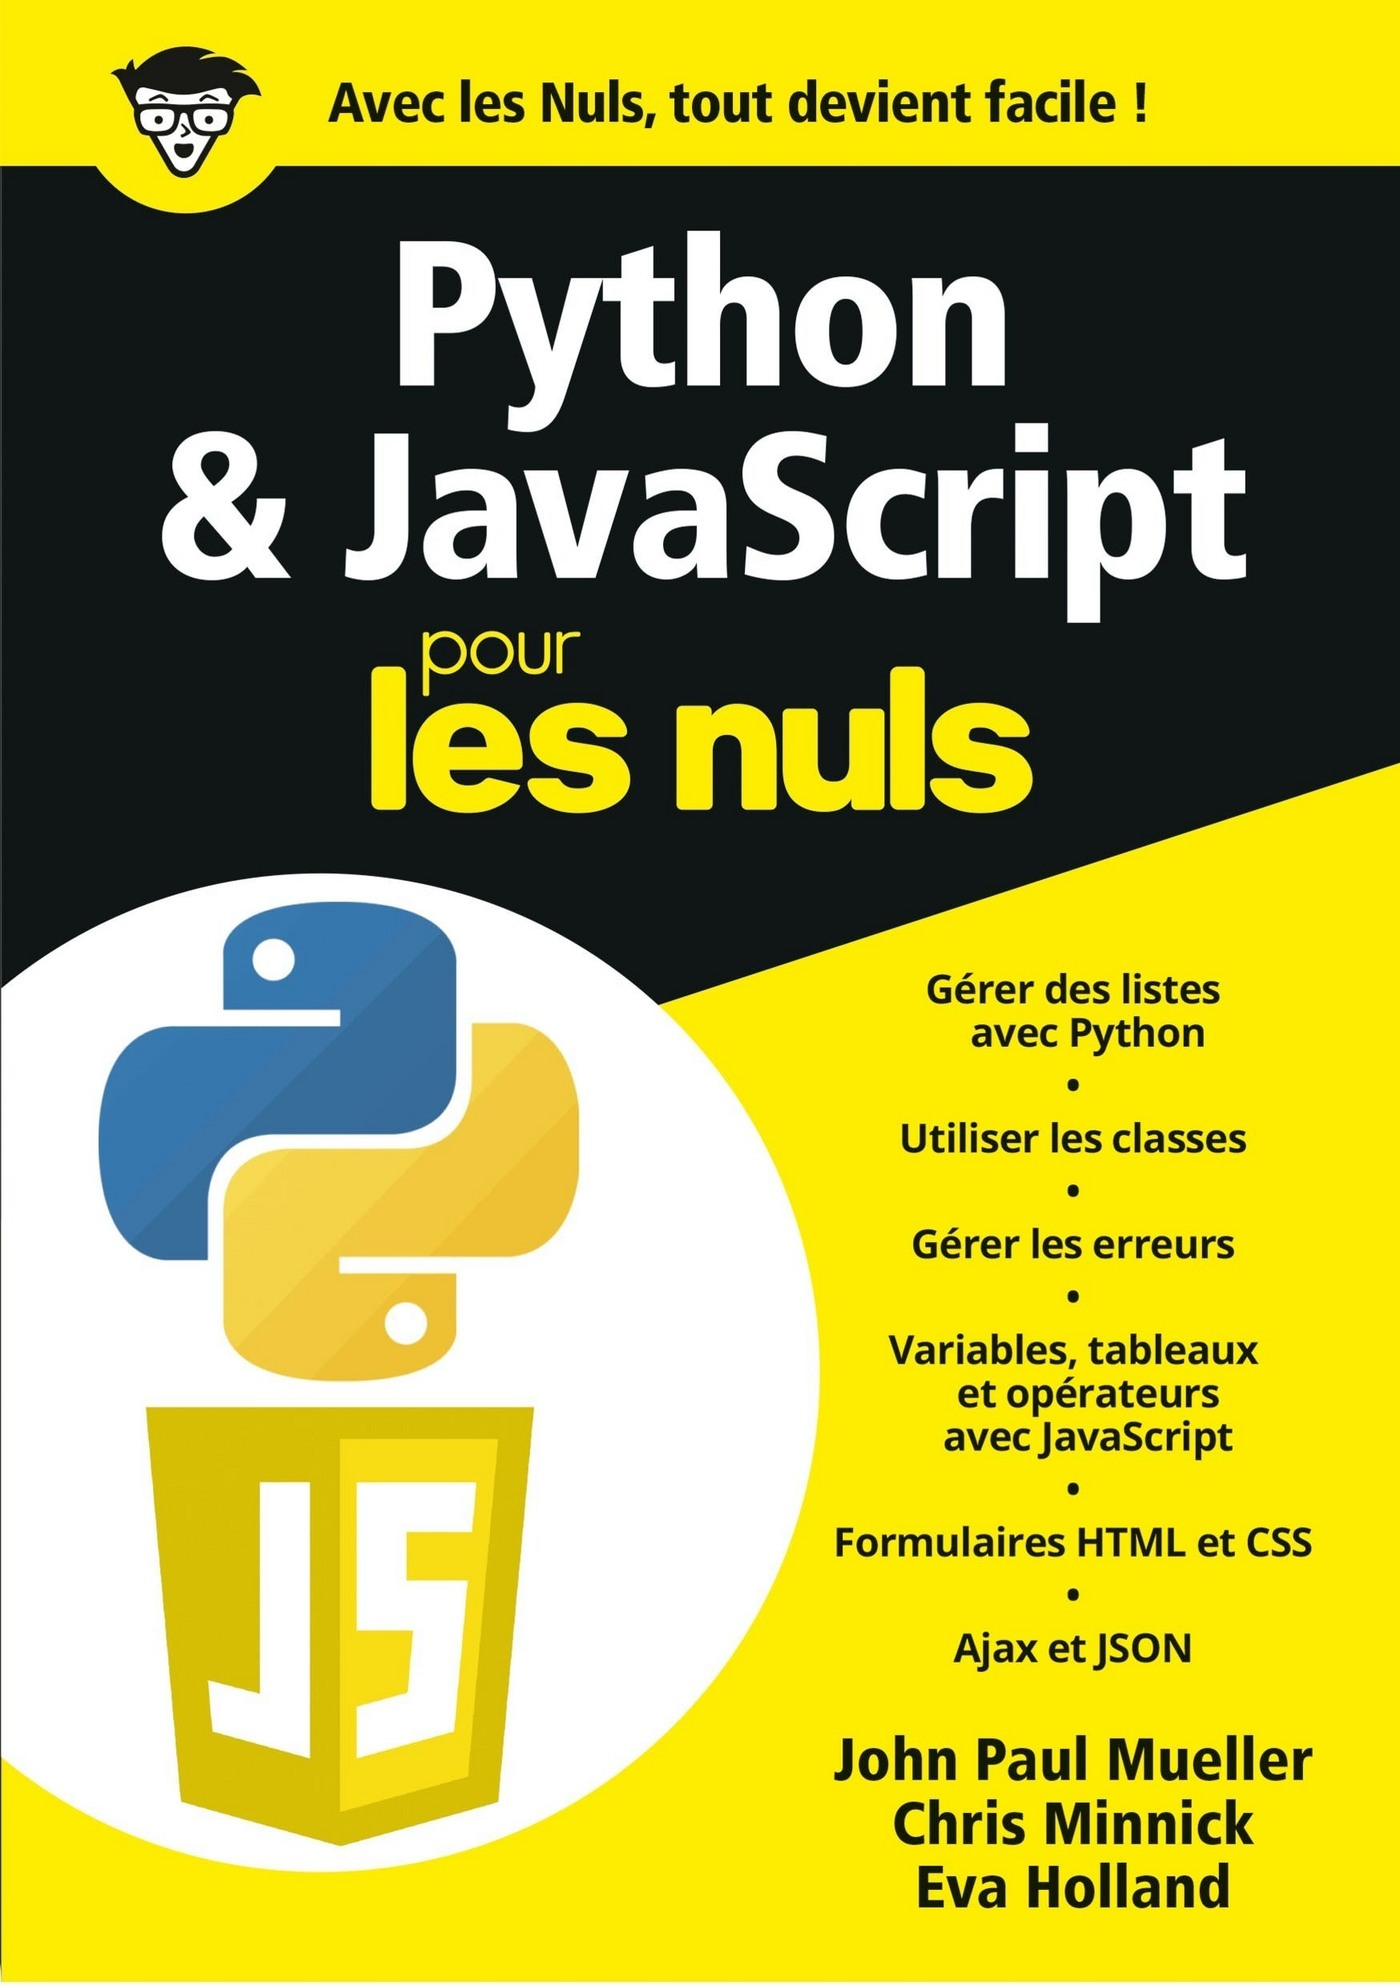 Vignette du livre Python & JavaScript pour les nuls - John Paul Mueller, Chris Minnick, Eva Holland